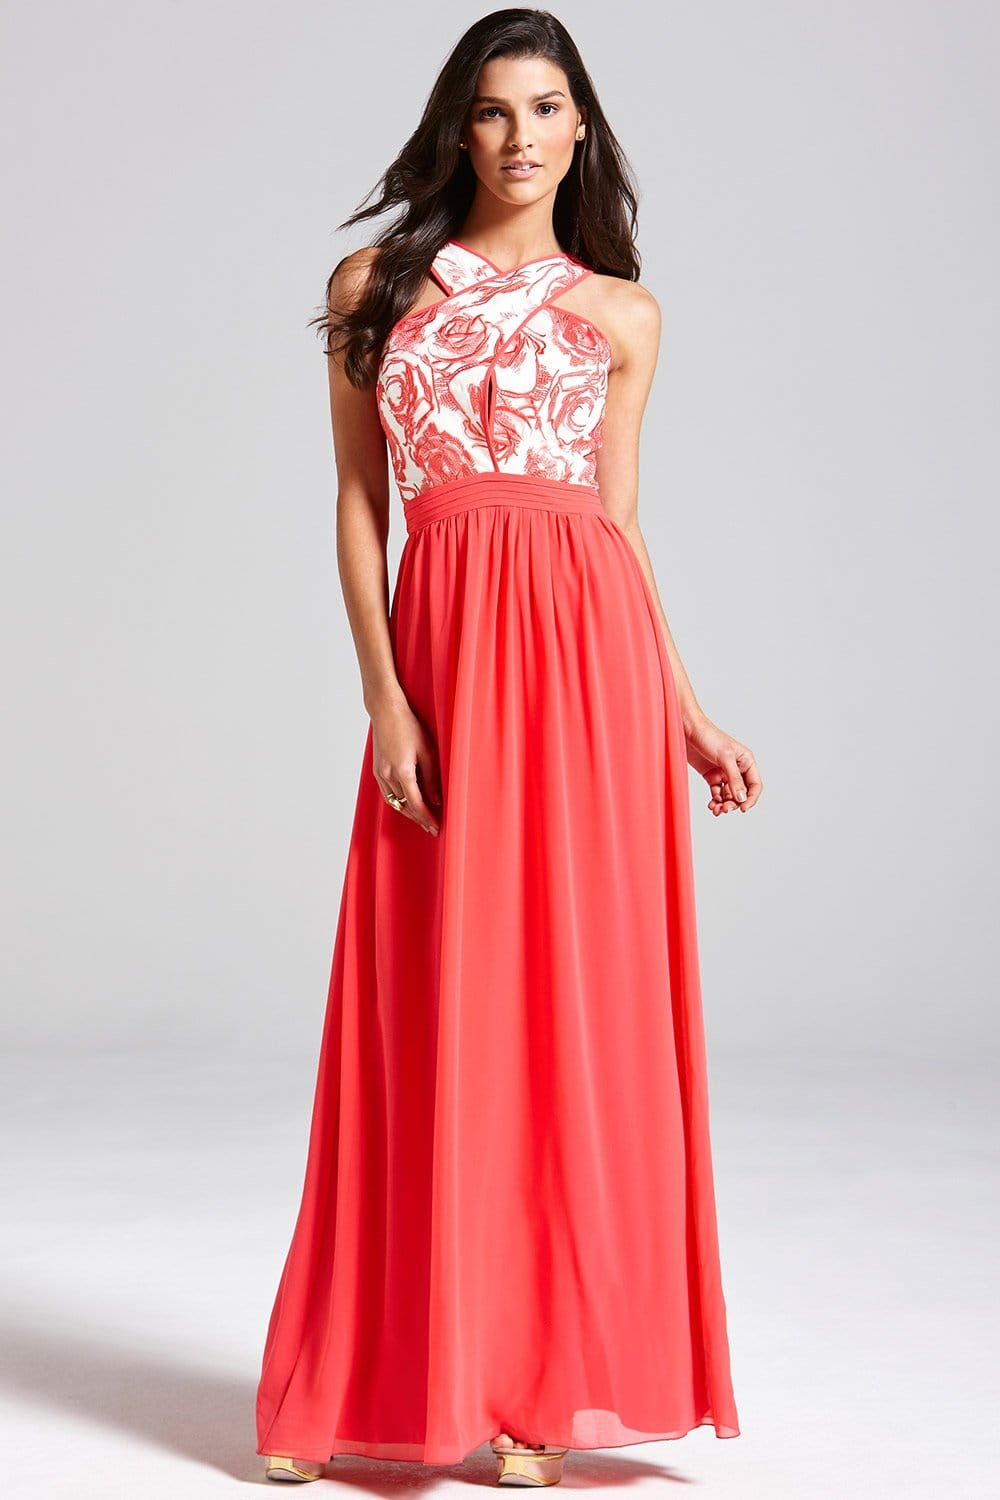 Images of Navy And Coral Maxi Dress - Reikian